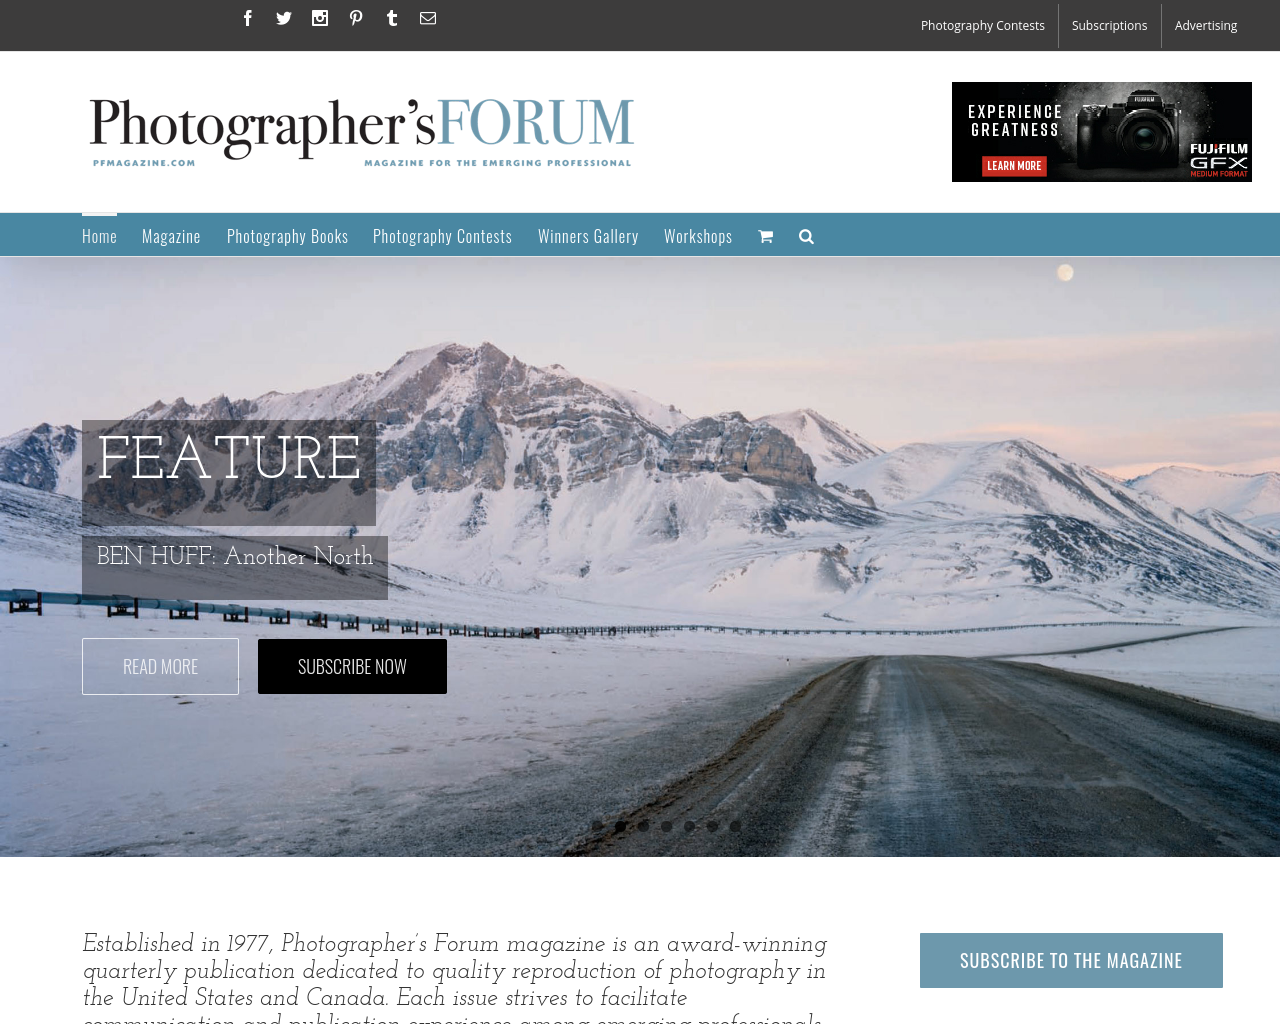 Photographer's-Forum-Advertising-Reviews-Pricing